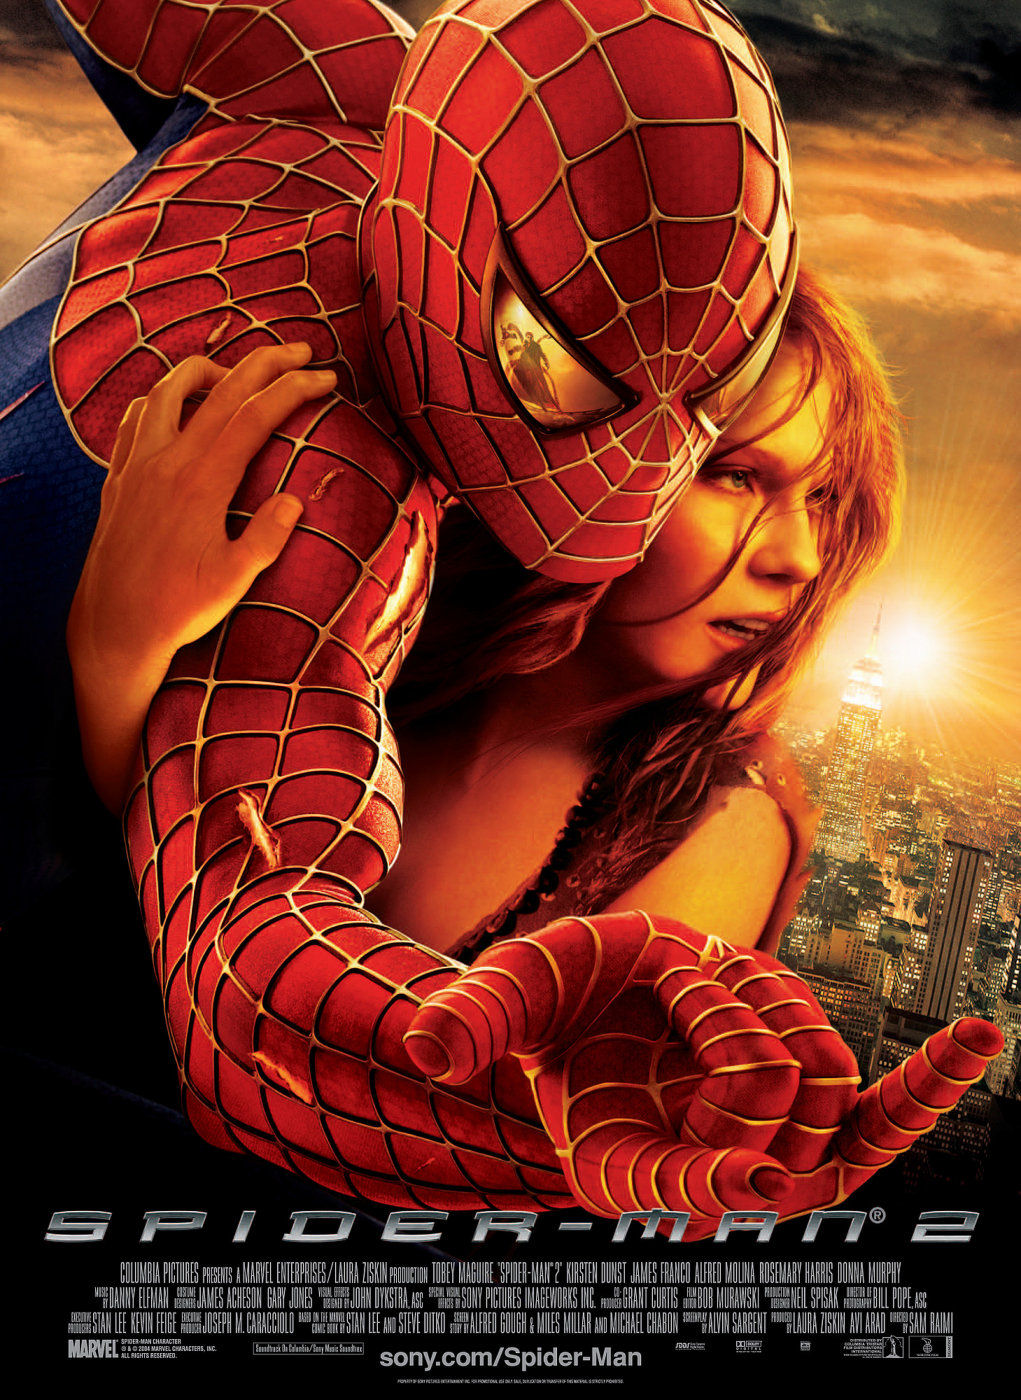 spider man 2 2004 full movie download in hindi